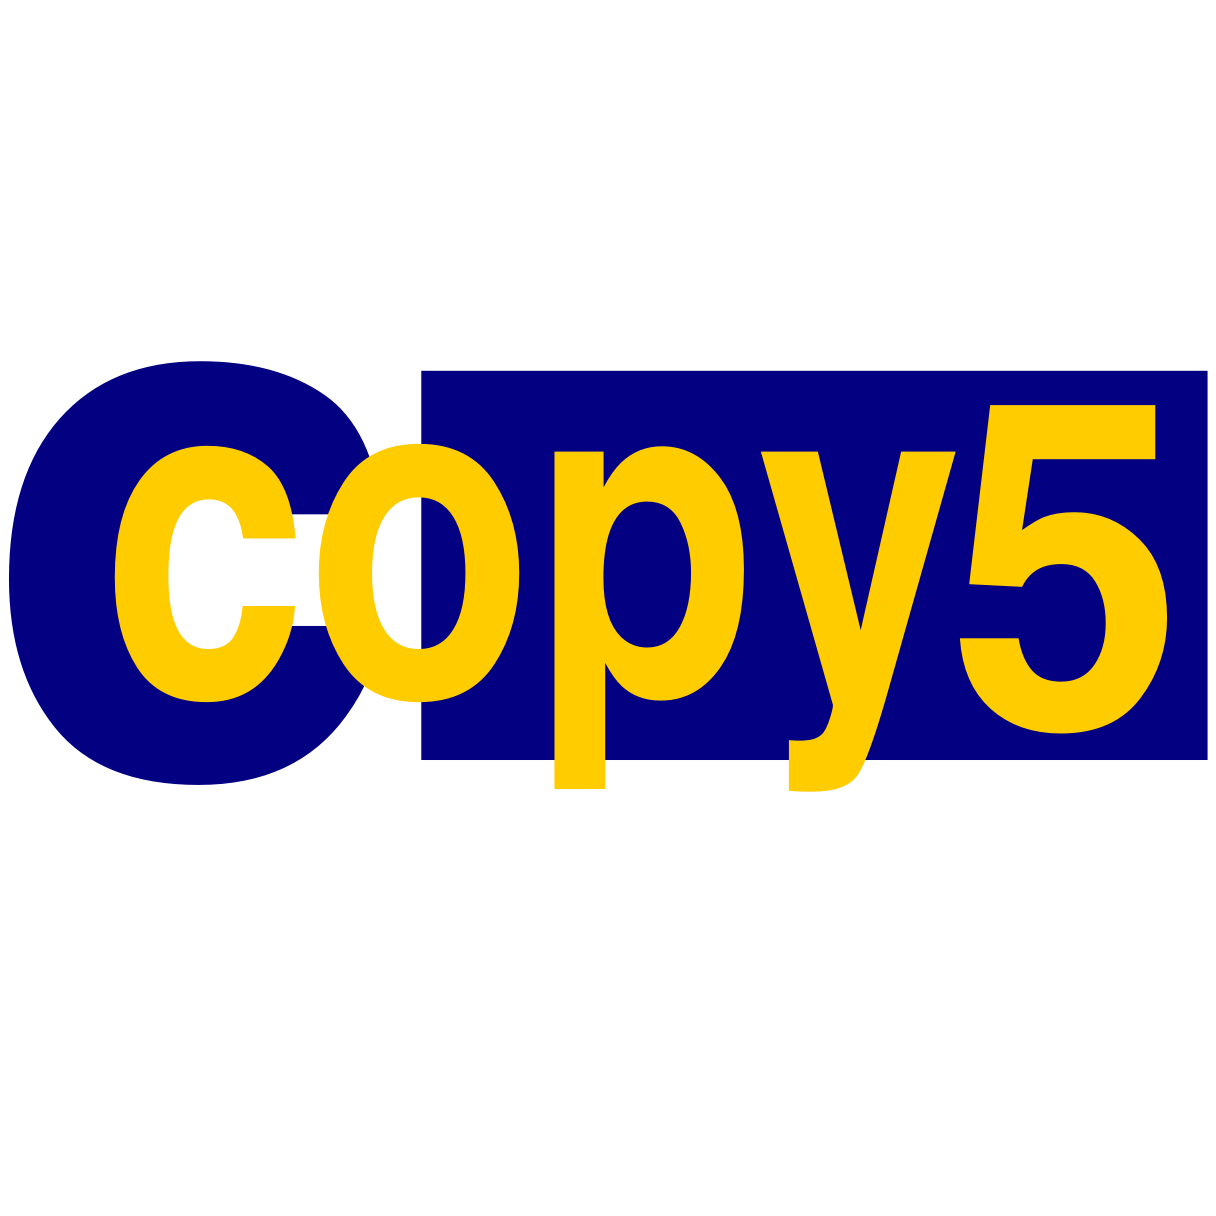 logo-copy-5-fresu-original